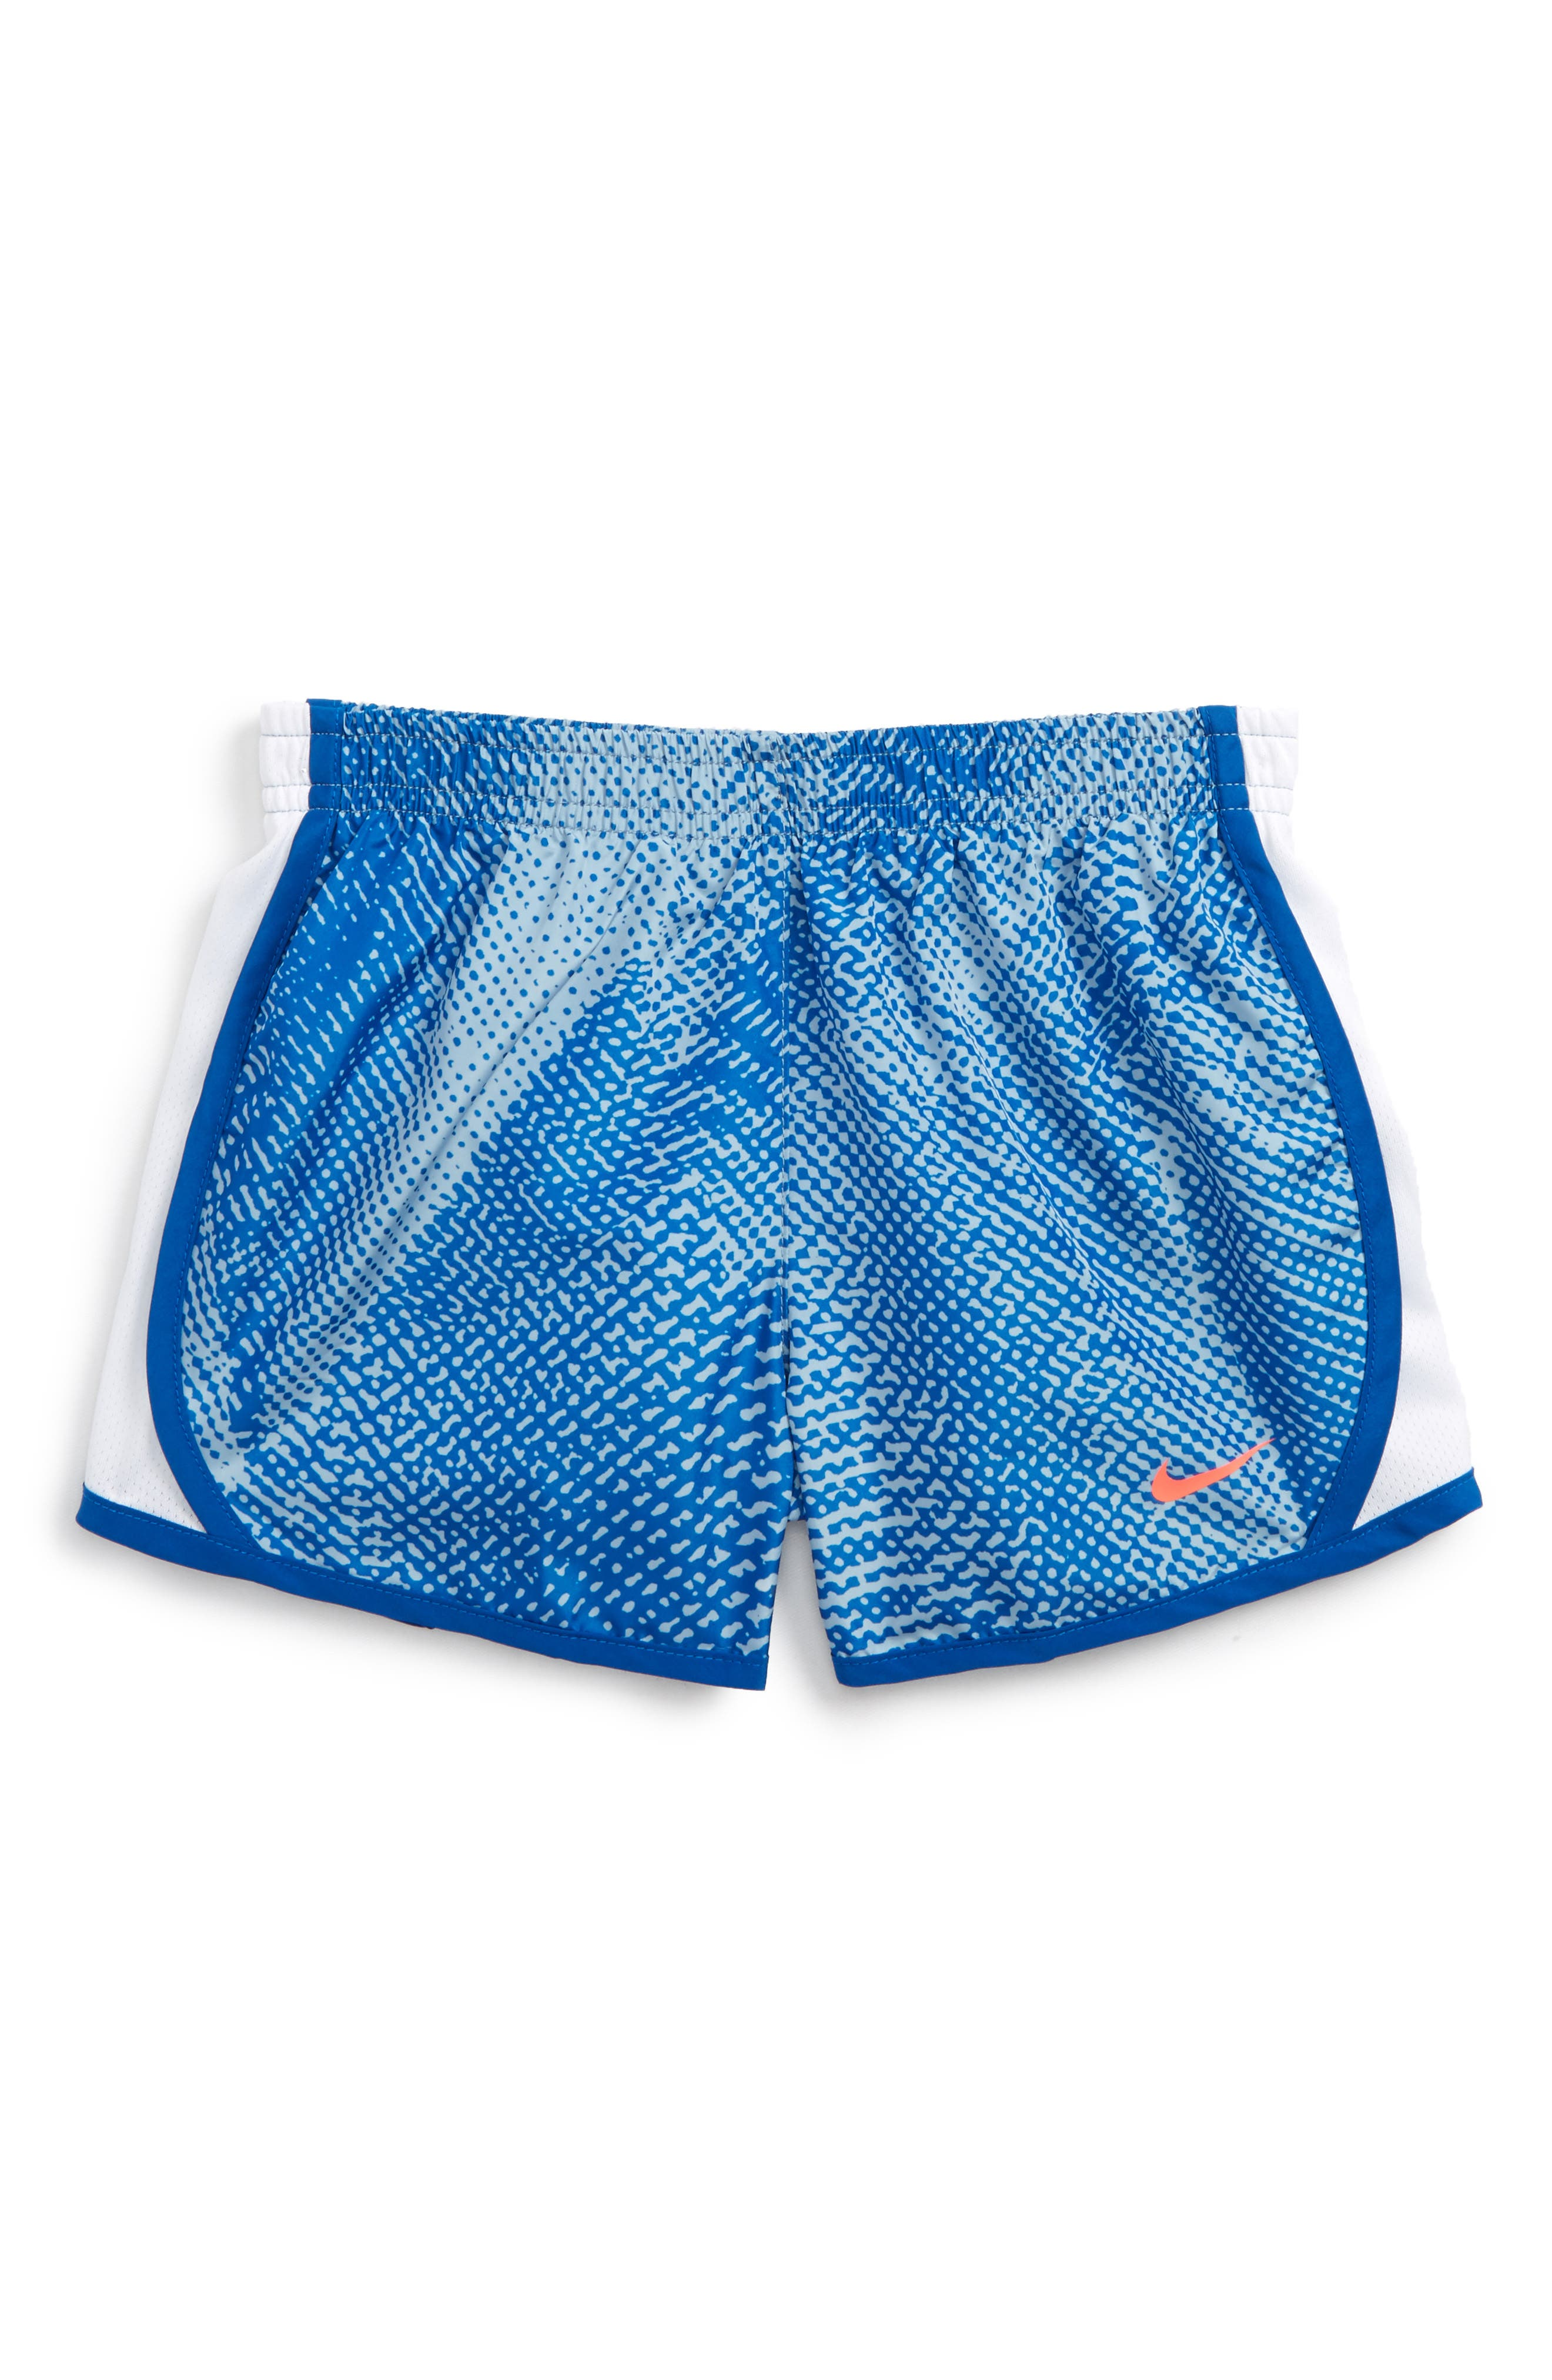 Tempo Dry Athletic Shorts,                         Main,                         color, 482